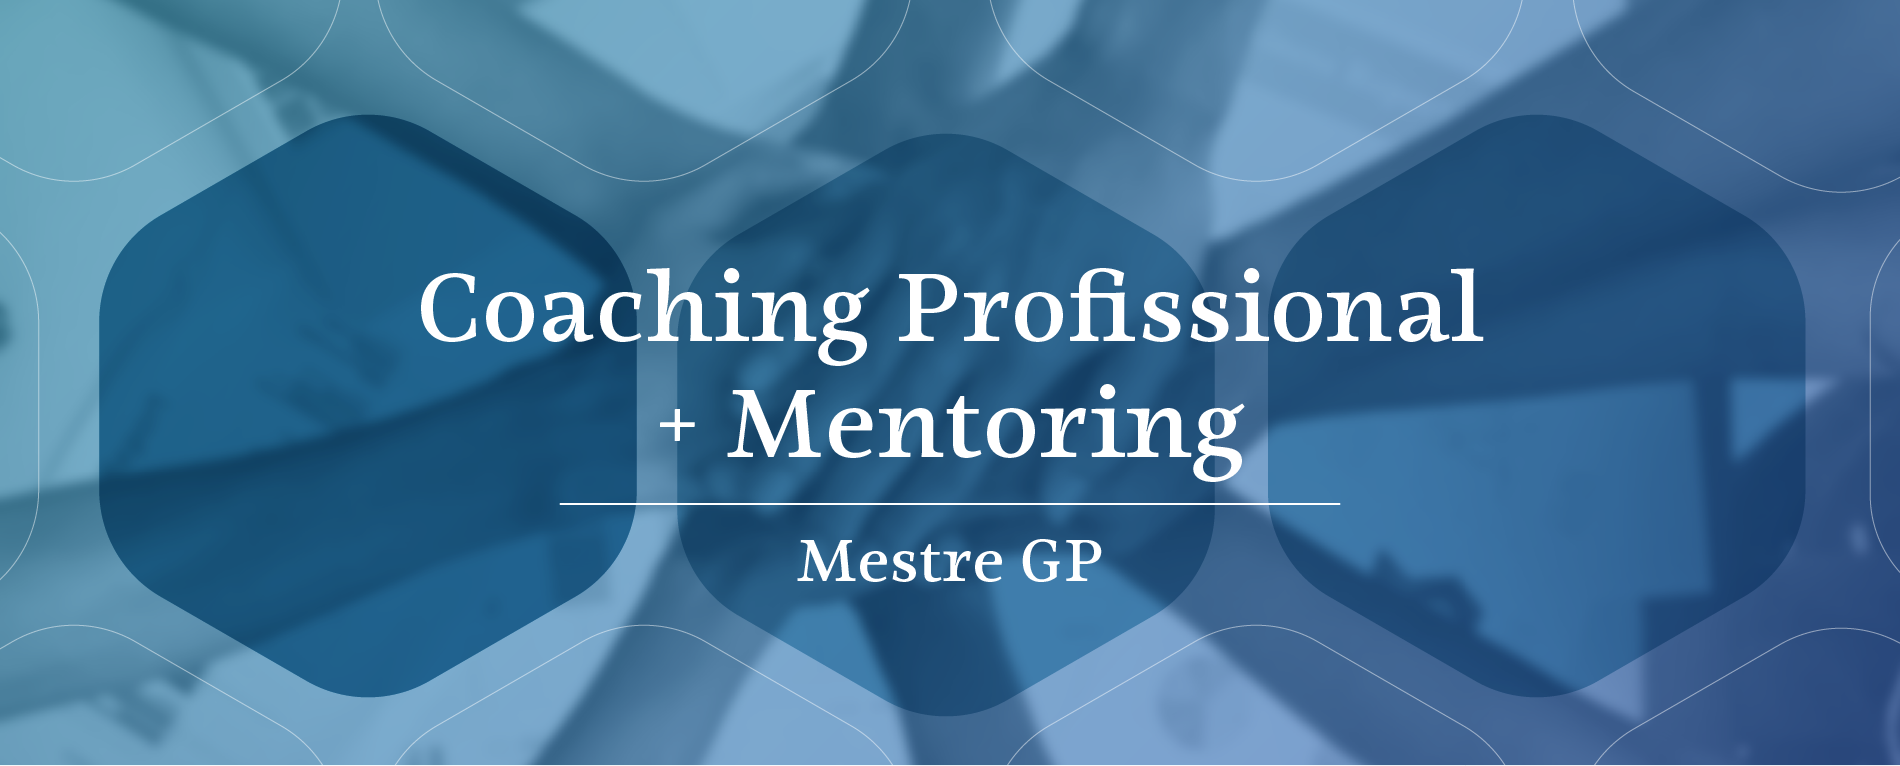 https://www.mestregp.com.br/wp-content/uploads/2016/10/CoachingMentoring_MGP-slice-01-1900x766.png